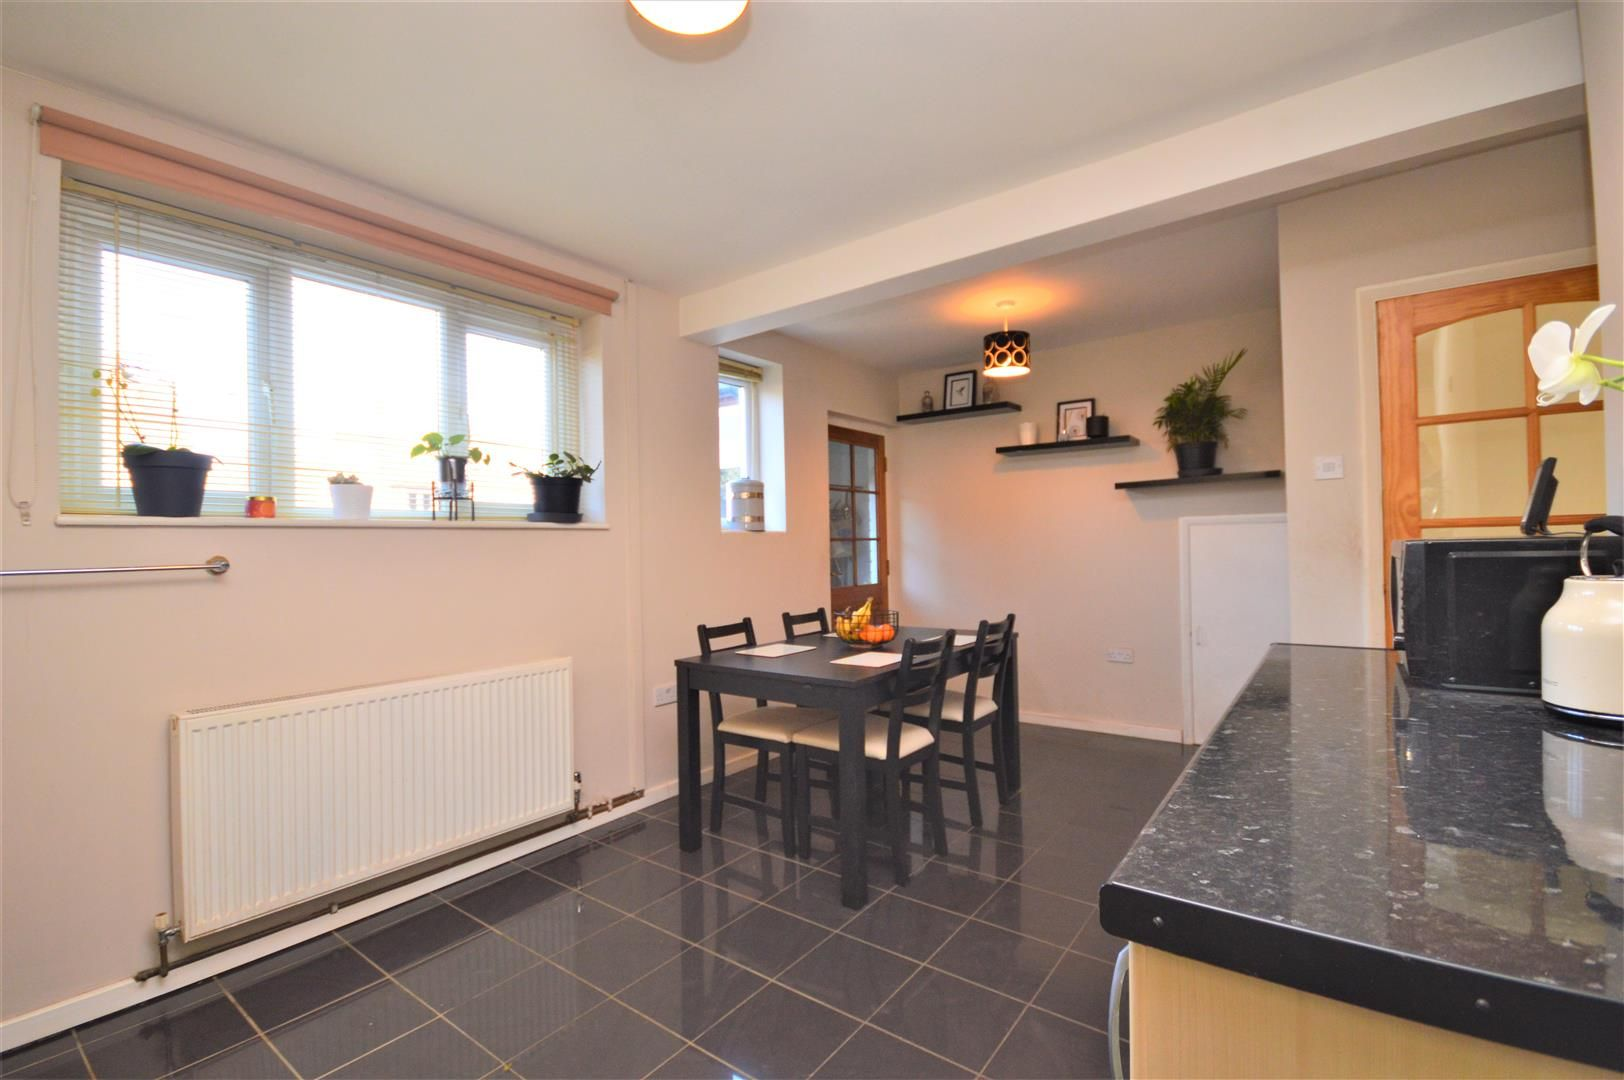 3 bed end-of-terrace for sale in Hereford 6